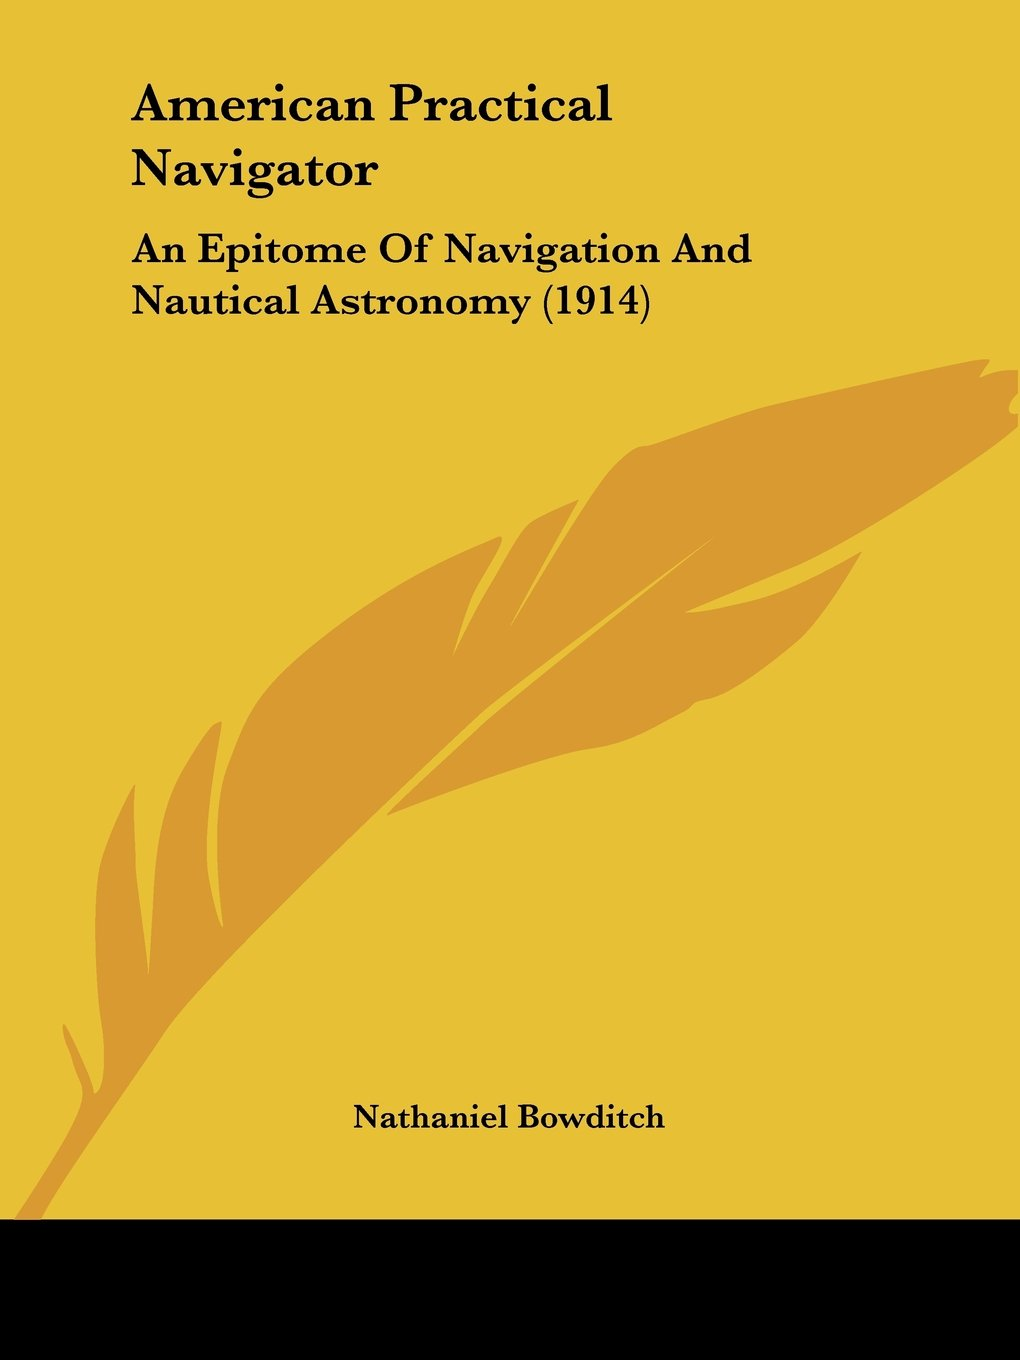 Download American Practical Navigator: An Epitome Of Navigation And Nautical Astronomy (1914) ebook